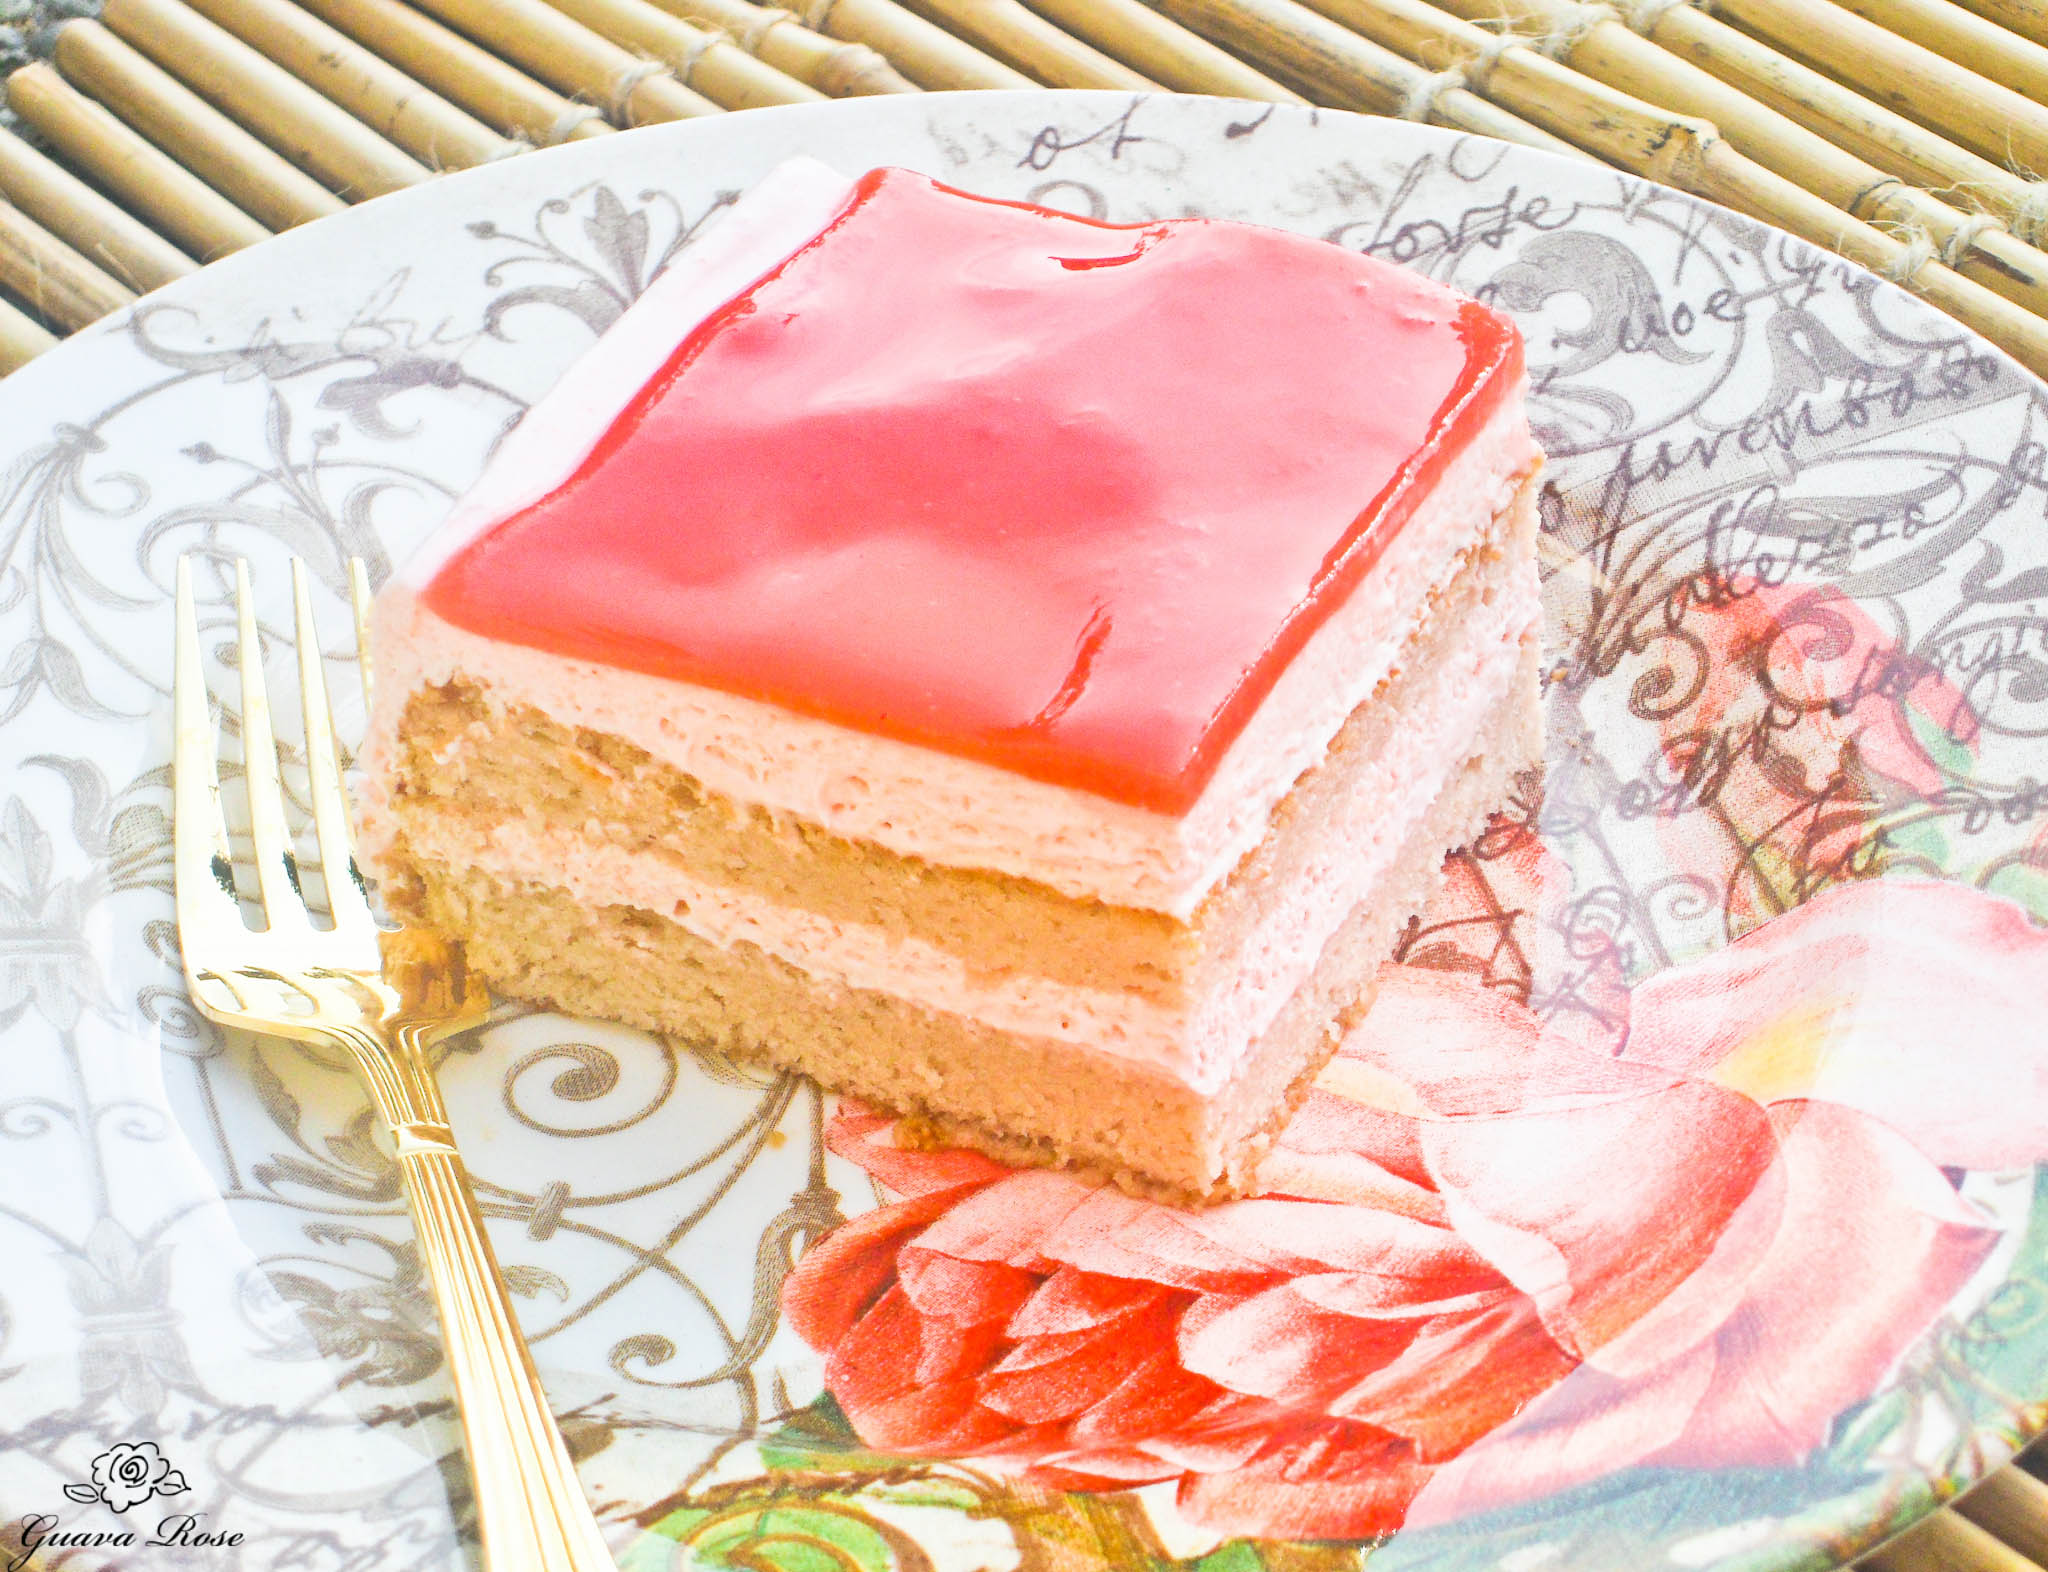 Piece of Guava Chiffon Cake (intro)